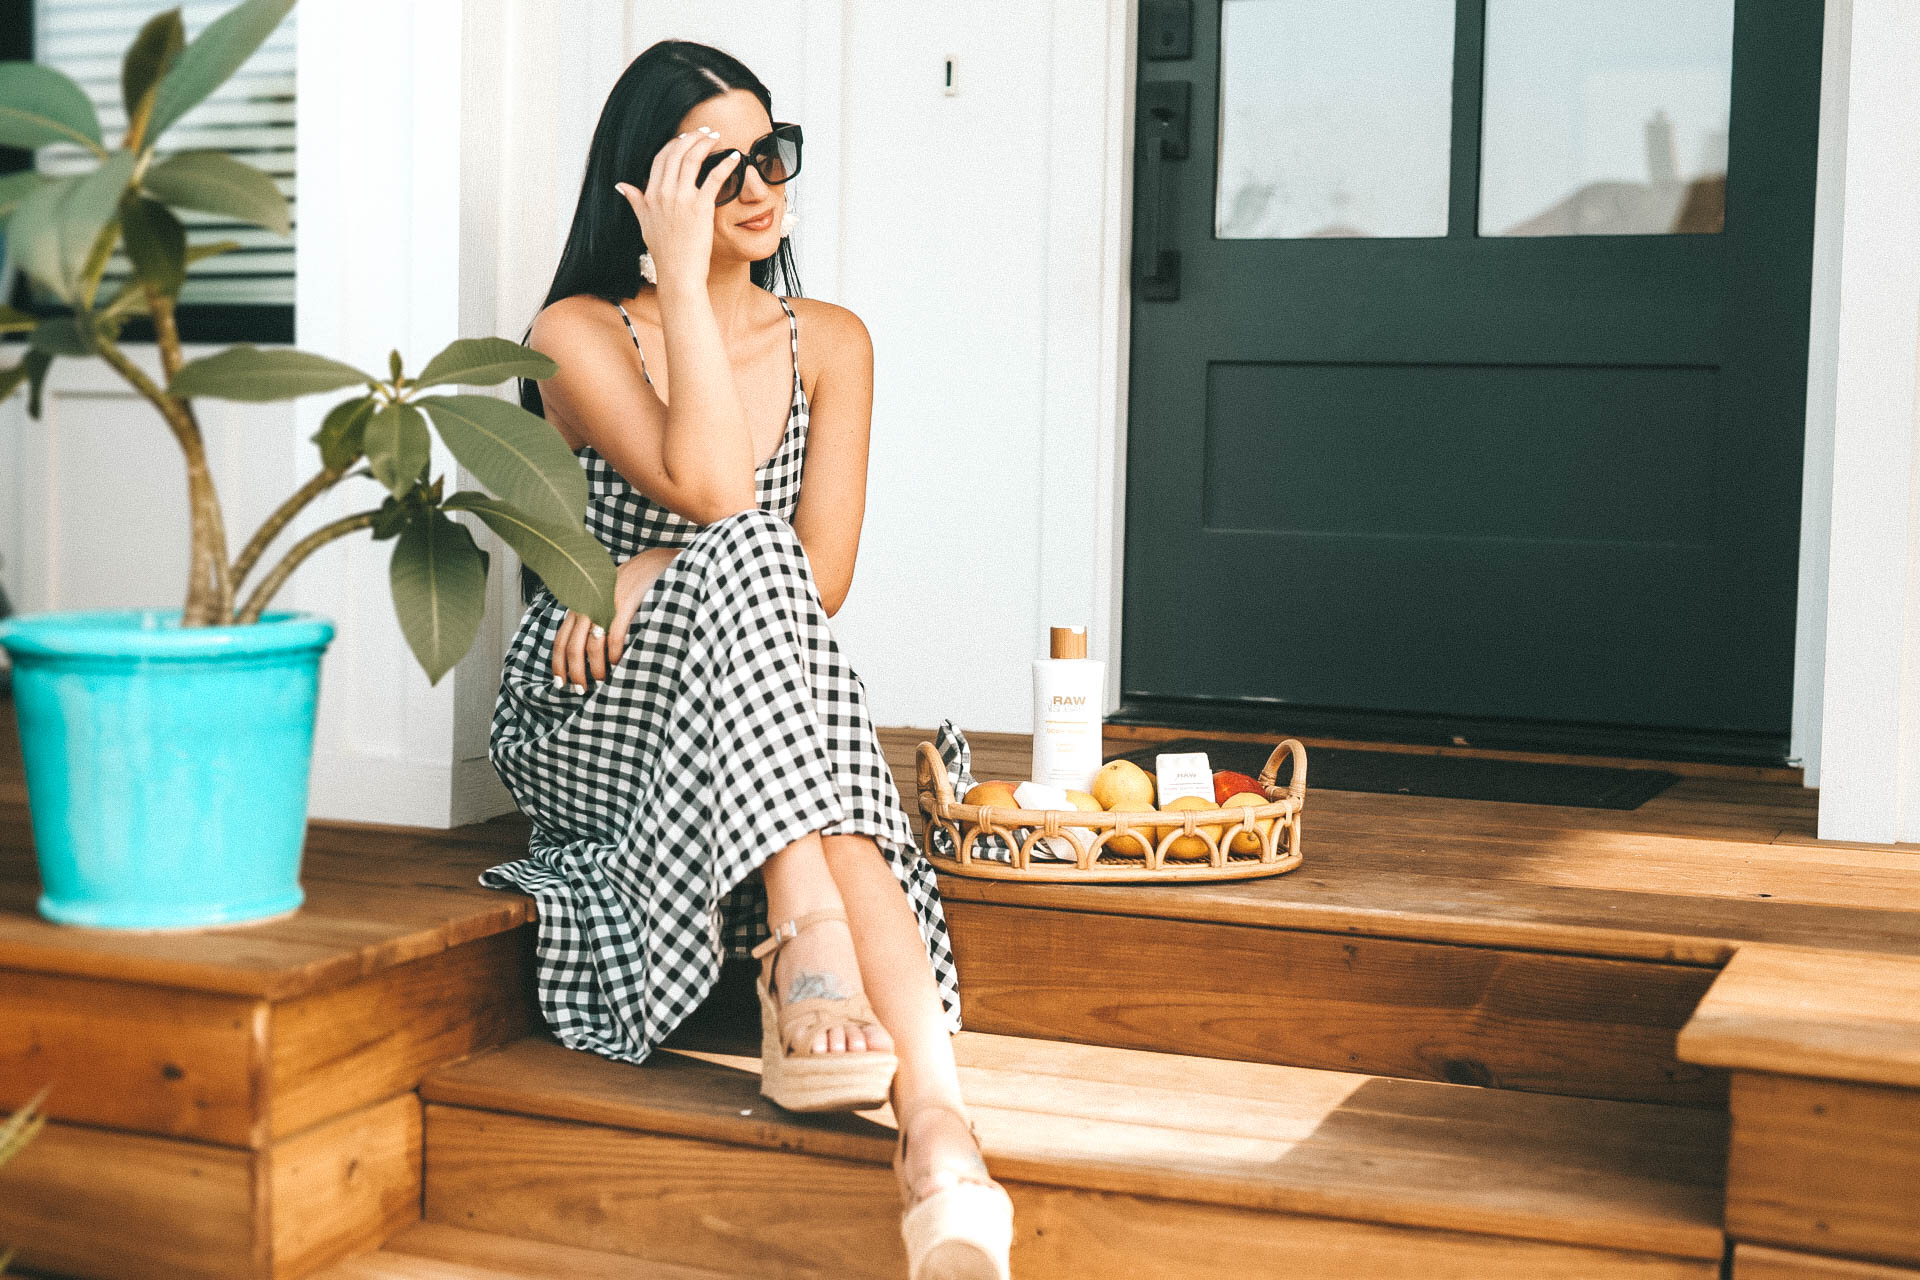 DTKAustin shares why it is so important for your health to use all natural beauty and skincare products like Raw Sugar Living.